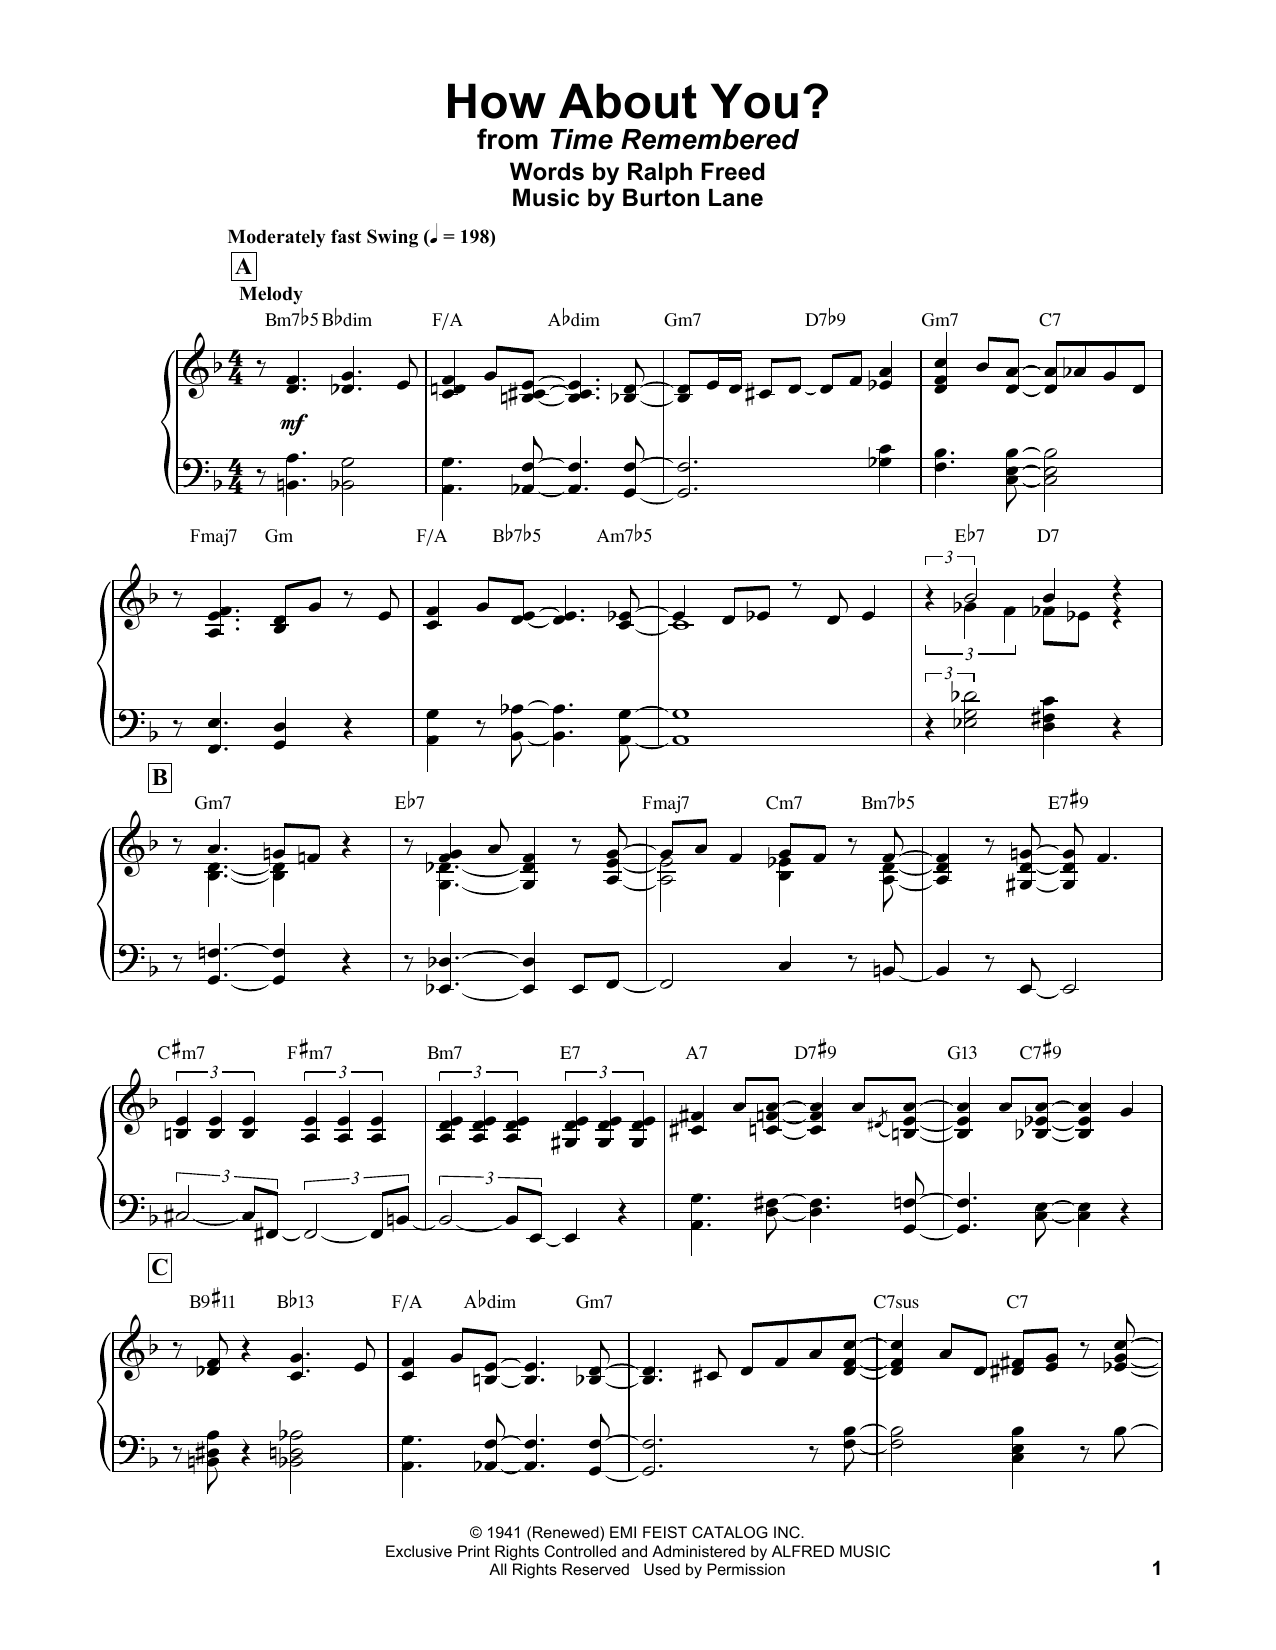 Bill Evans How About You? sheet music notes and chords. Download Printable PDF.